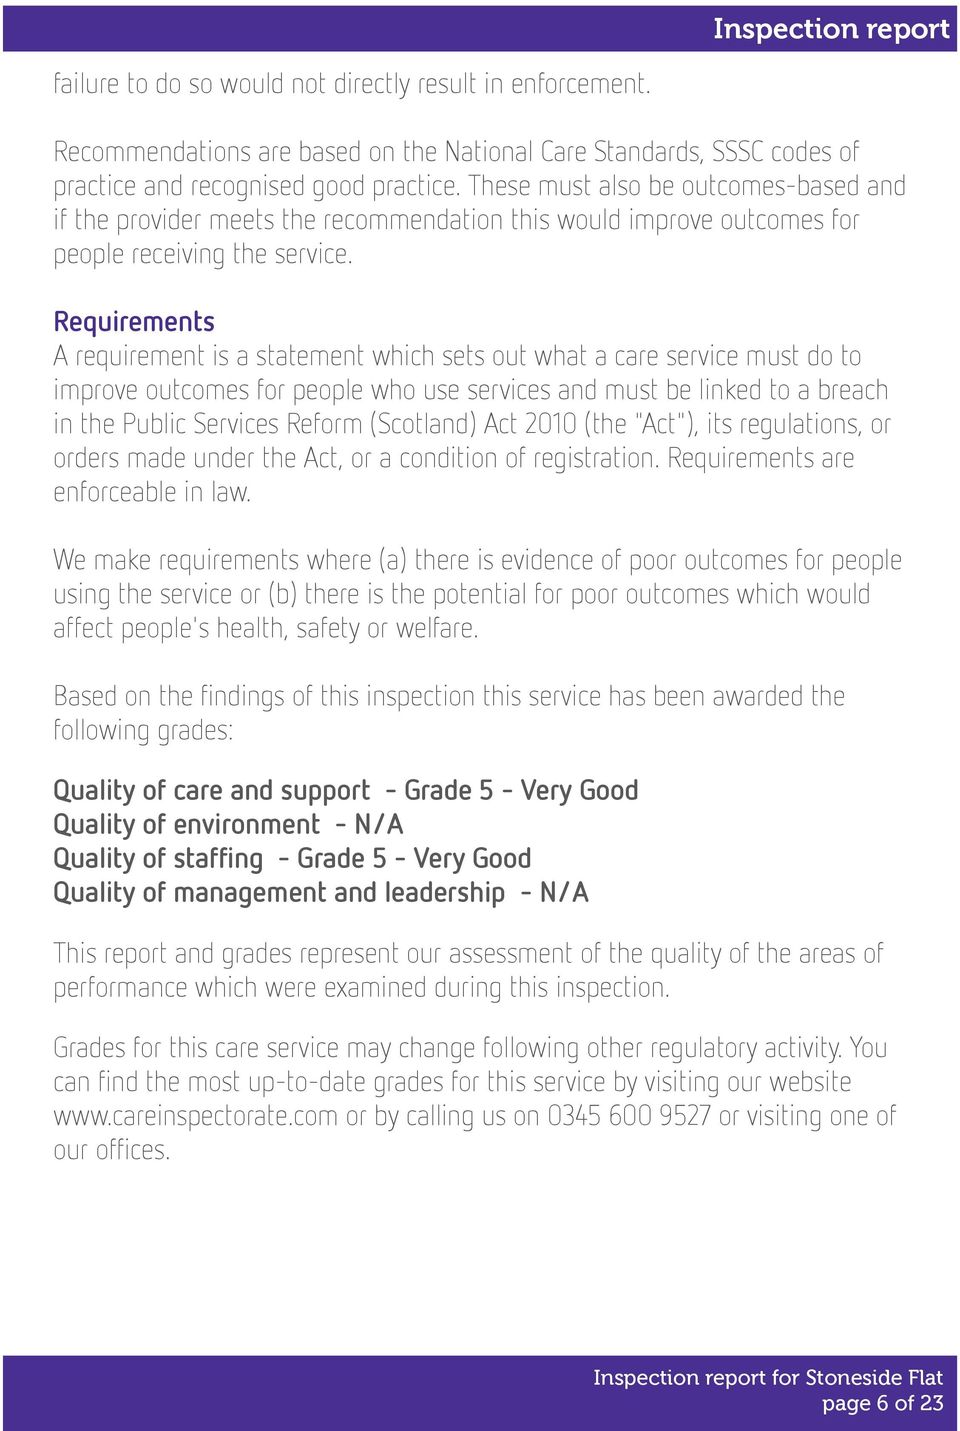 Requirements A requirement is a statement which sets out what a care service must do to improve outcomes for people who use services and must be linked to a breach in the Public Services Reform